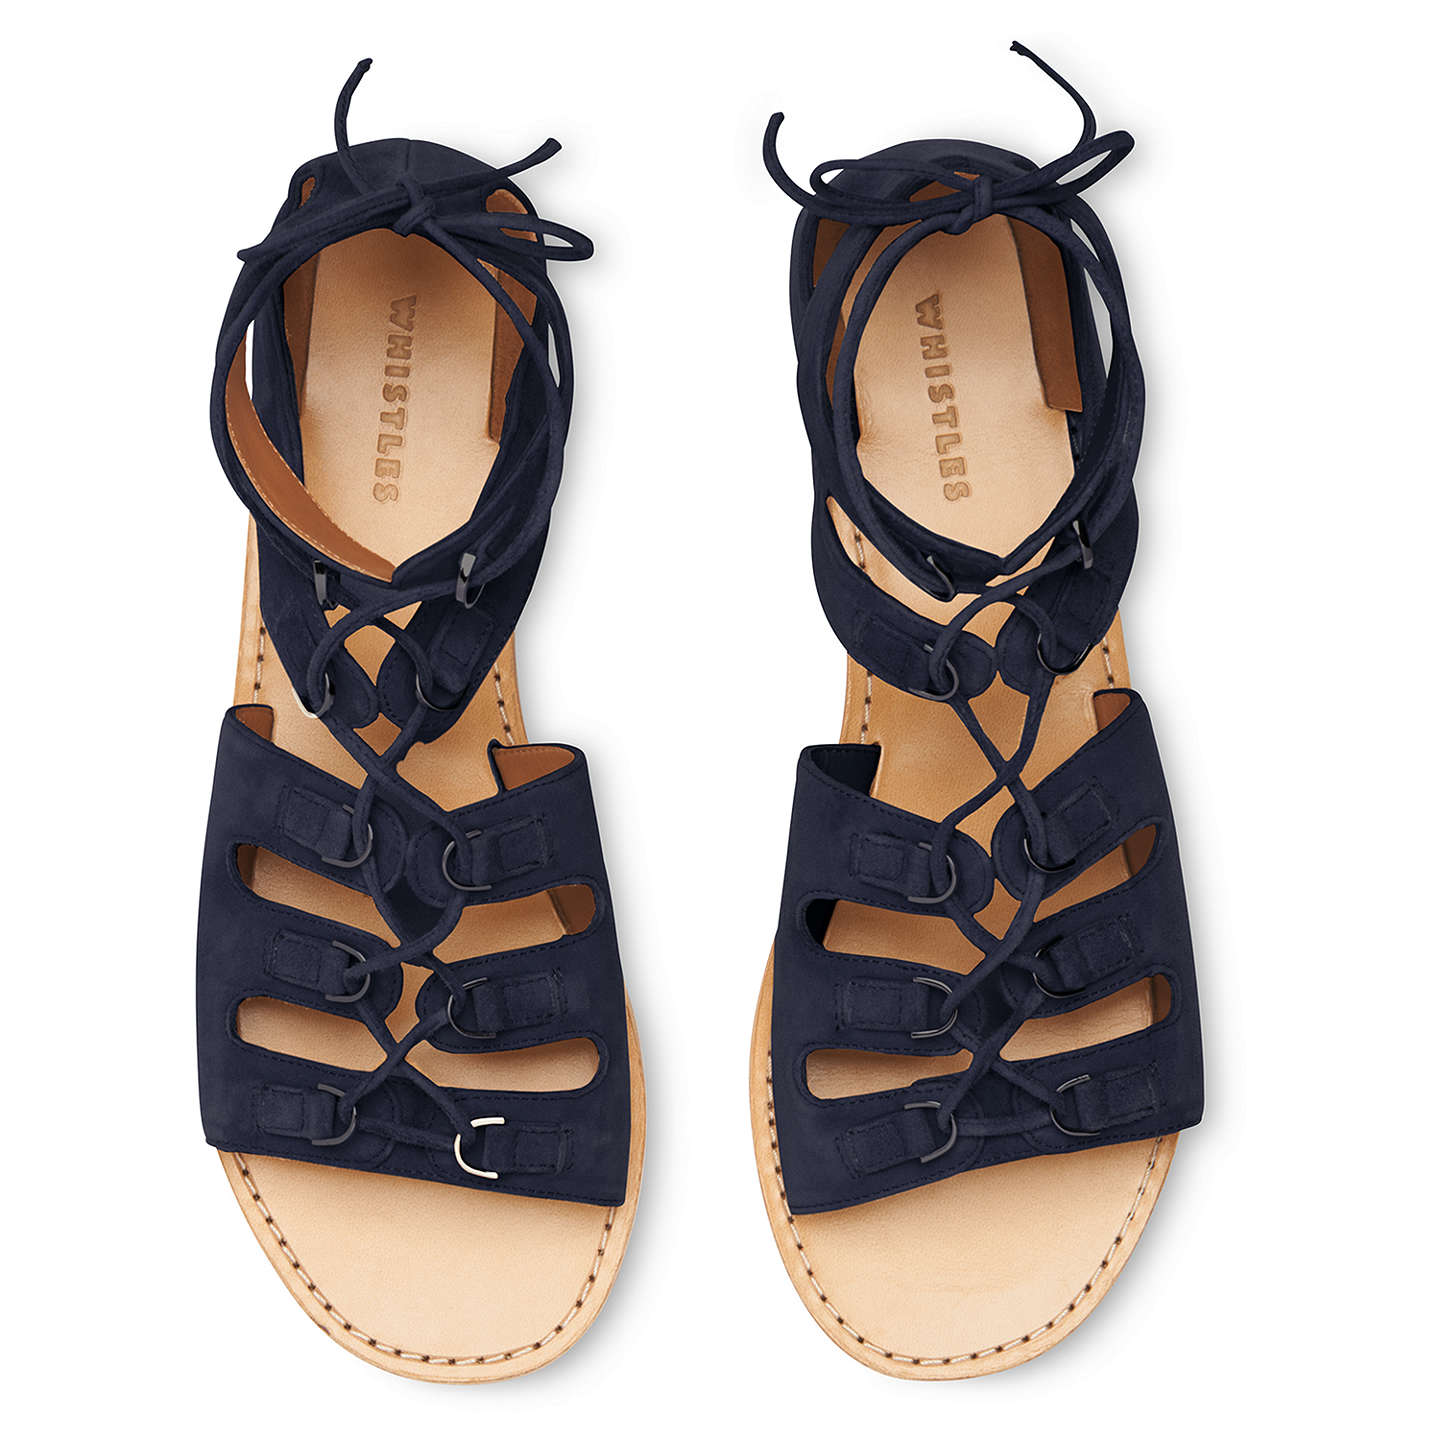 BuyWhistles Elba D Ring Sandals, Navy, 3 Online at johnlewis.com